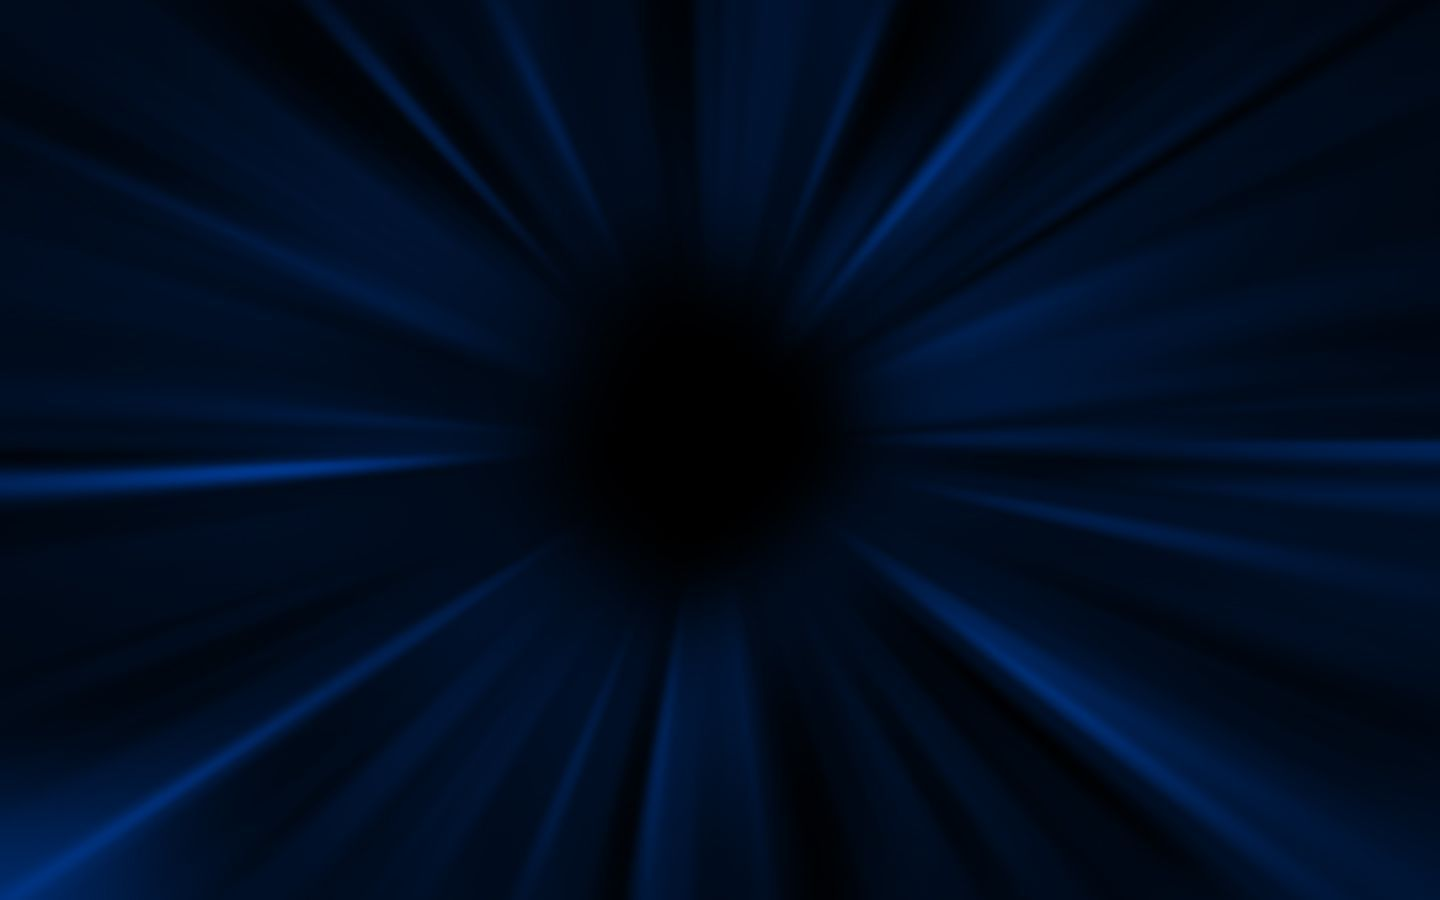 Download Navy Blue Background Wallpaper Hd Backgrounds